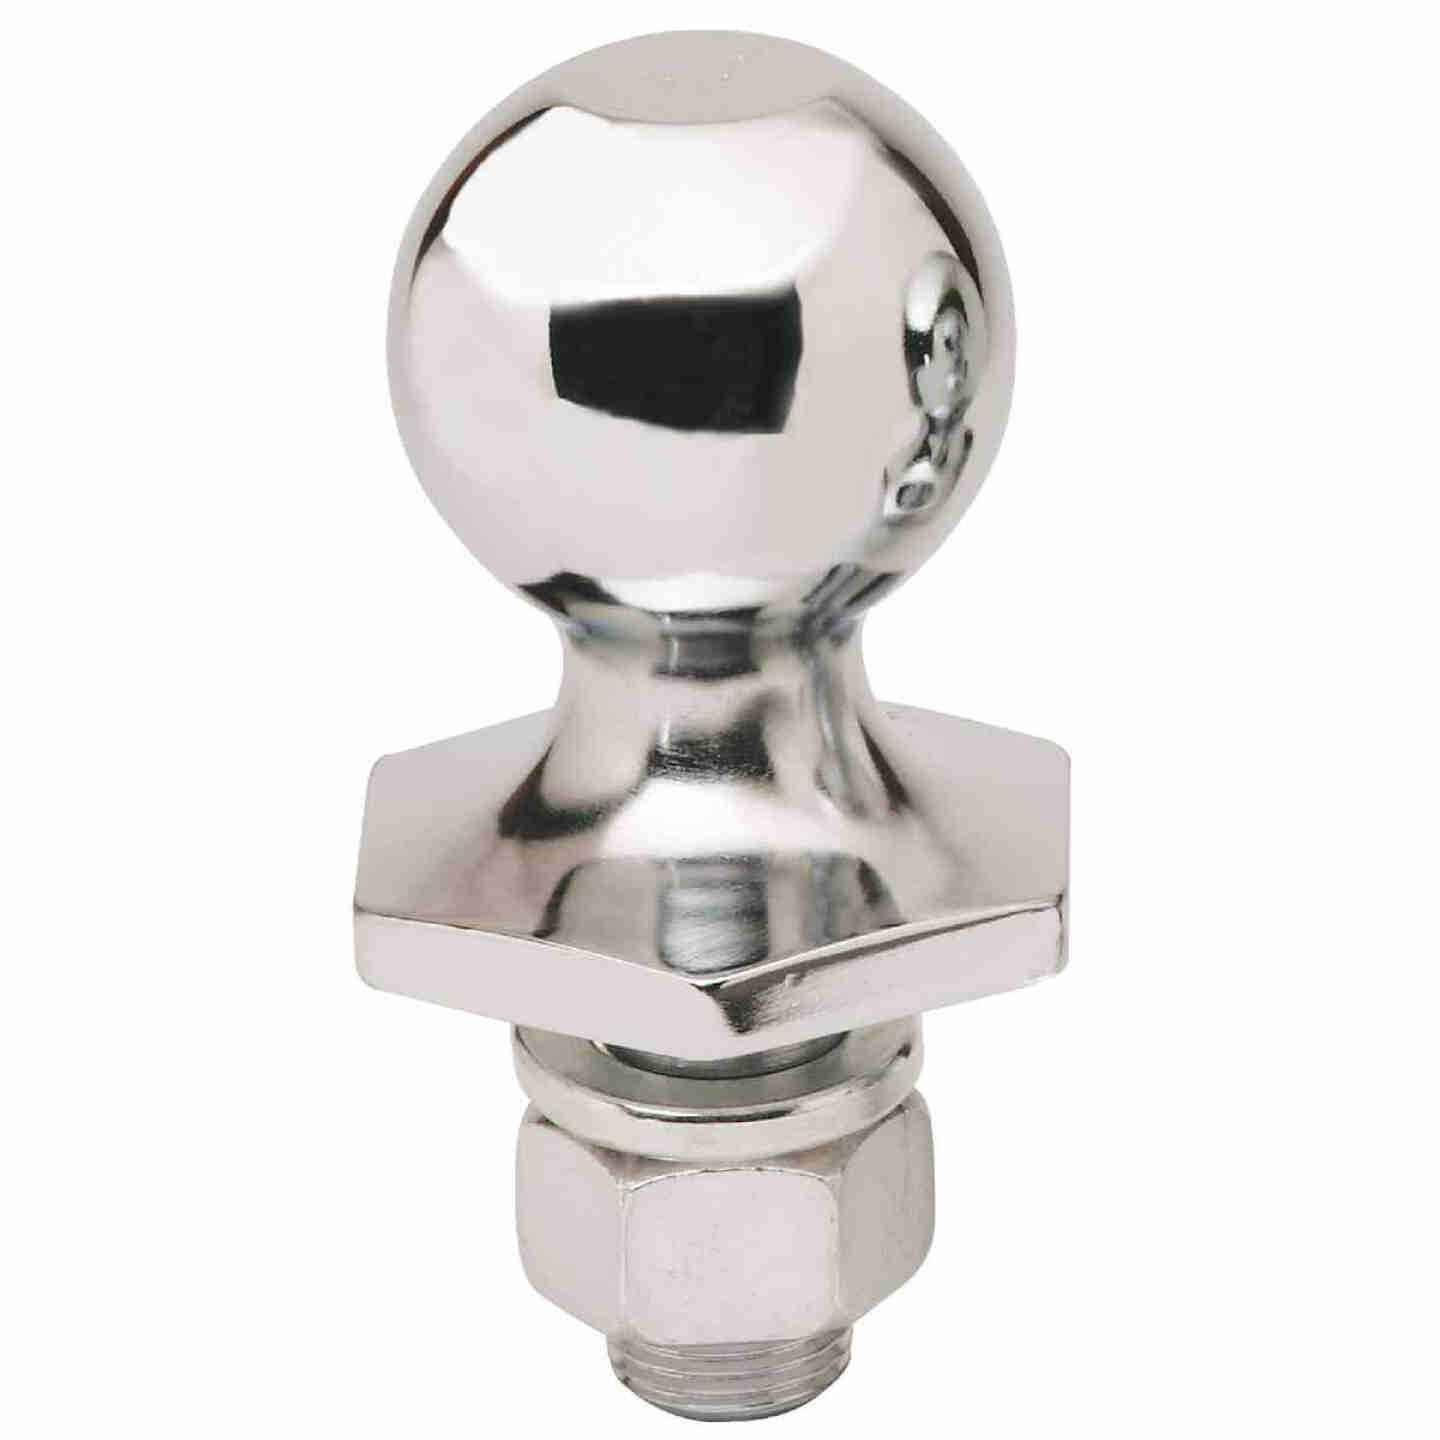 Reese Towpower Class I Interlock Hitch Ball, 1-7/8 In. x 3/4 In. x 1-1/2 In. Image 1